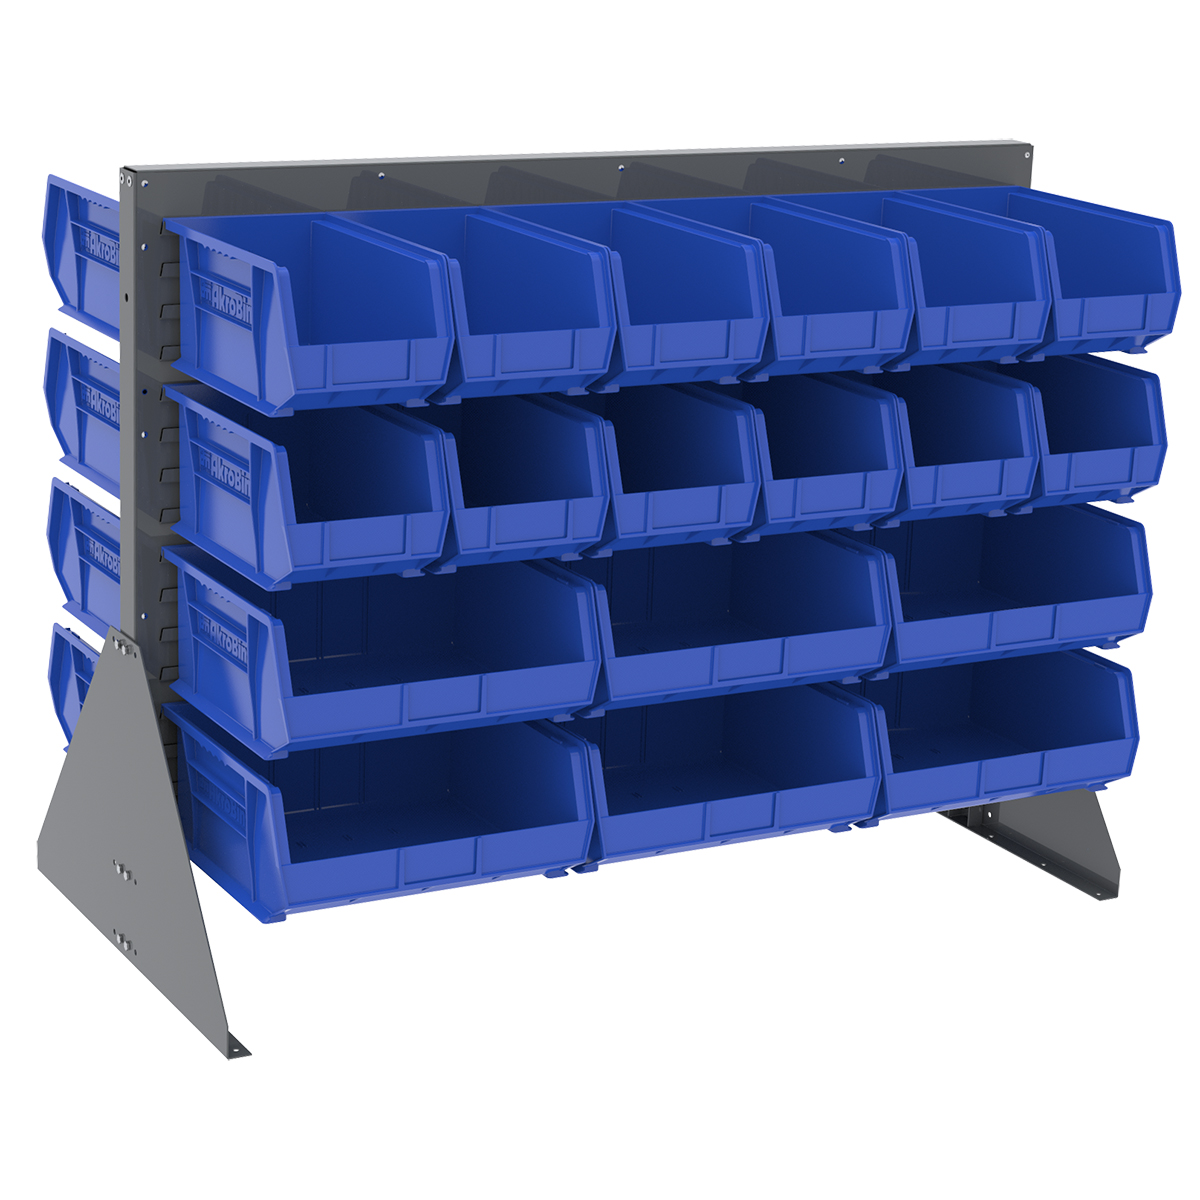 Item DISCONTINUED by Manufacturer.  Low Profile Floor Rack, 2-Sided w/ 36 AkroBins, Gray/Blue (30607GYASSTB).  This item sold in carton quantities of 1.